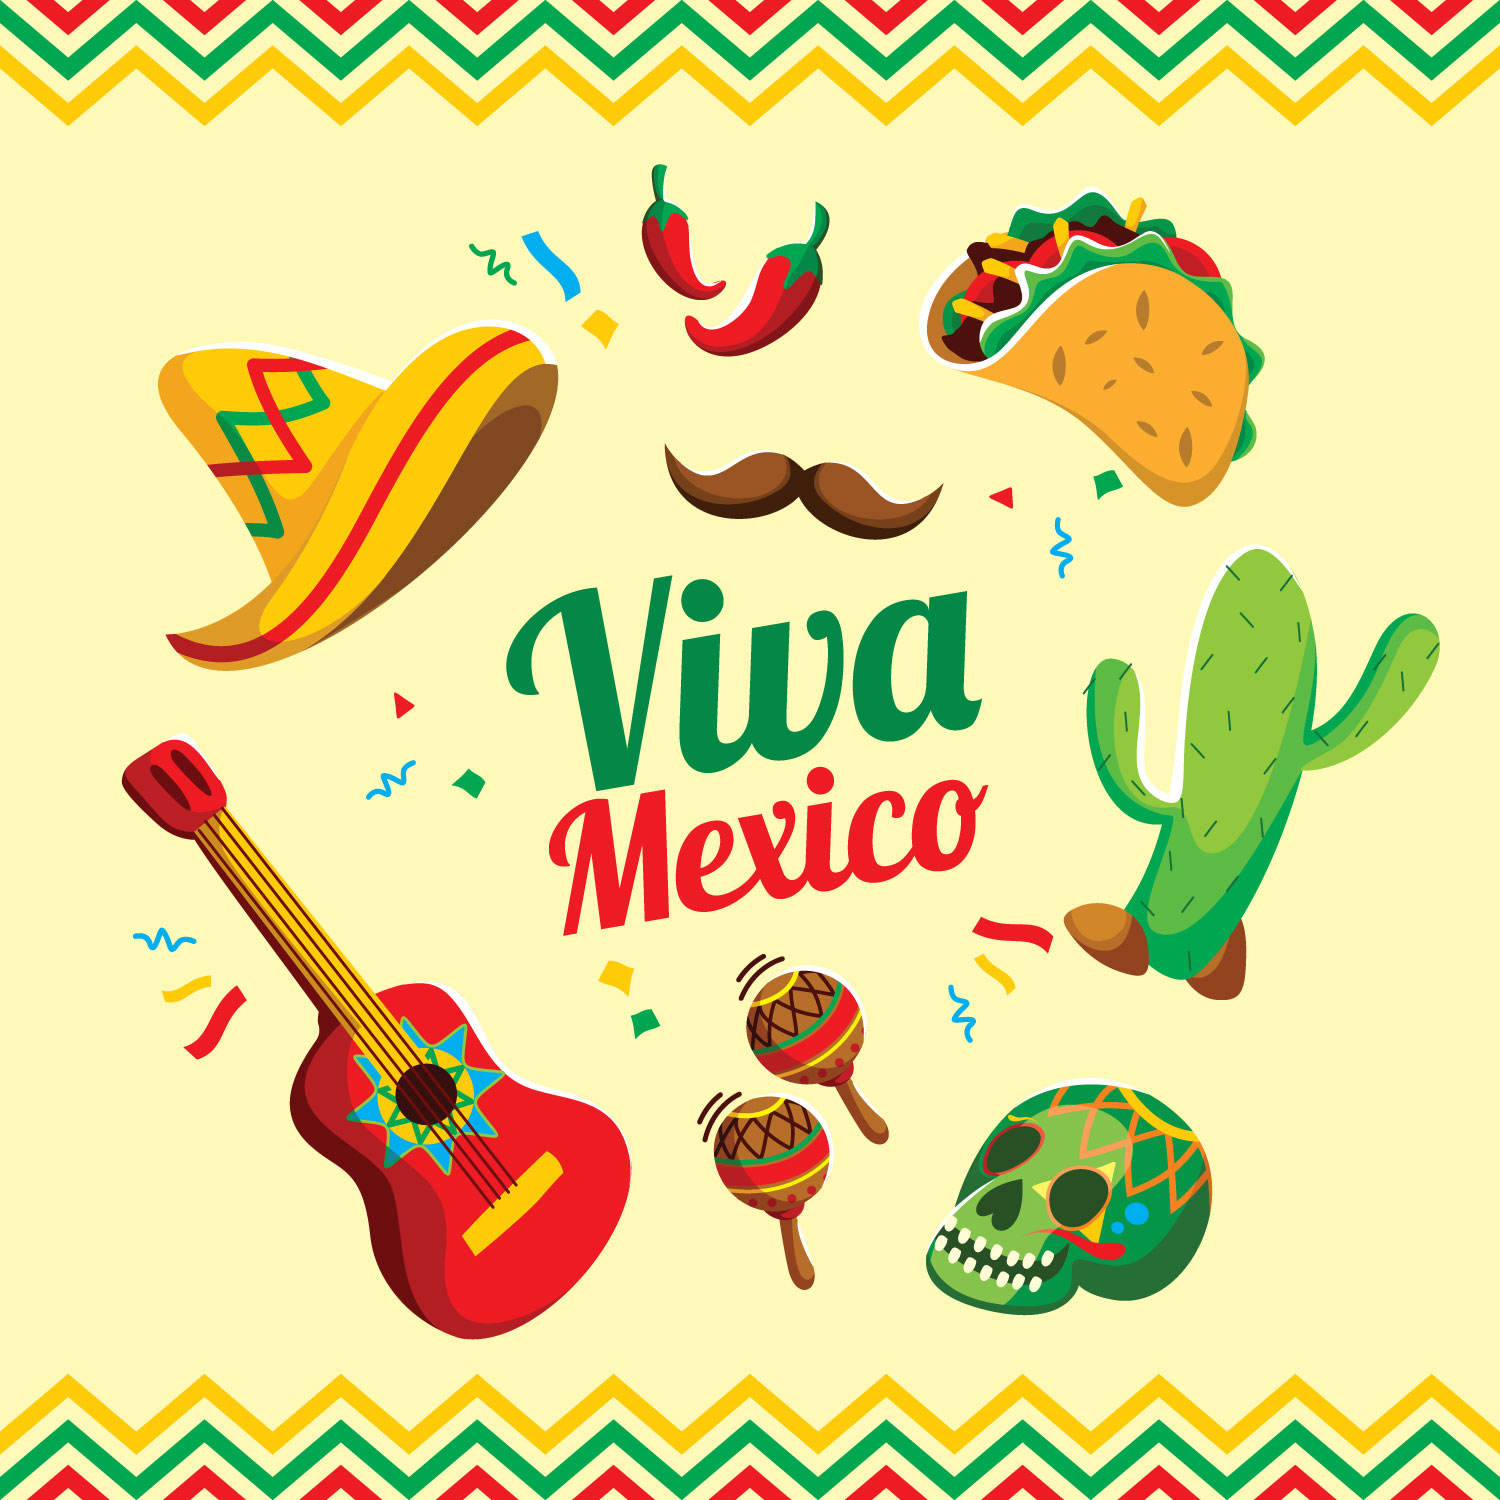 Viva Mexico Free Vector Art 809 Free Downloads